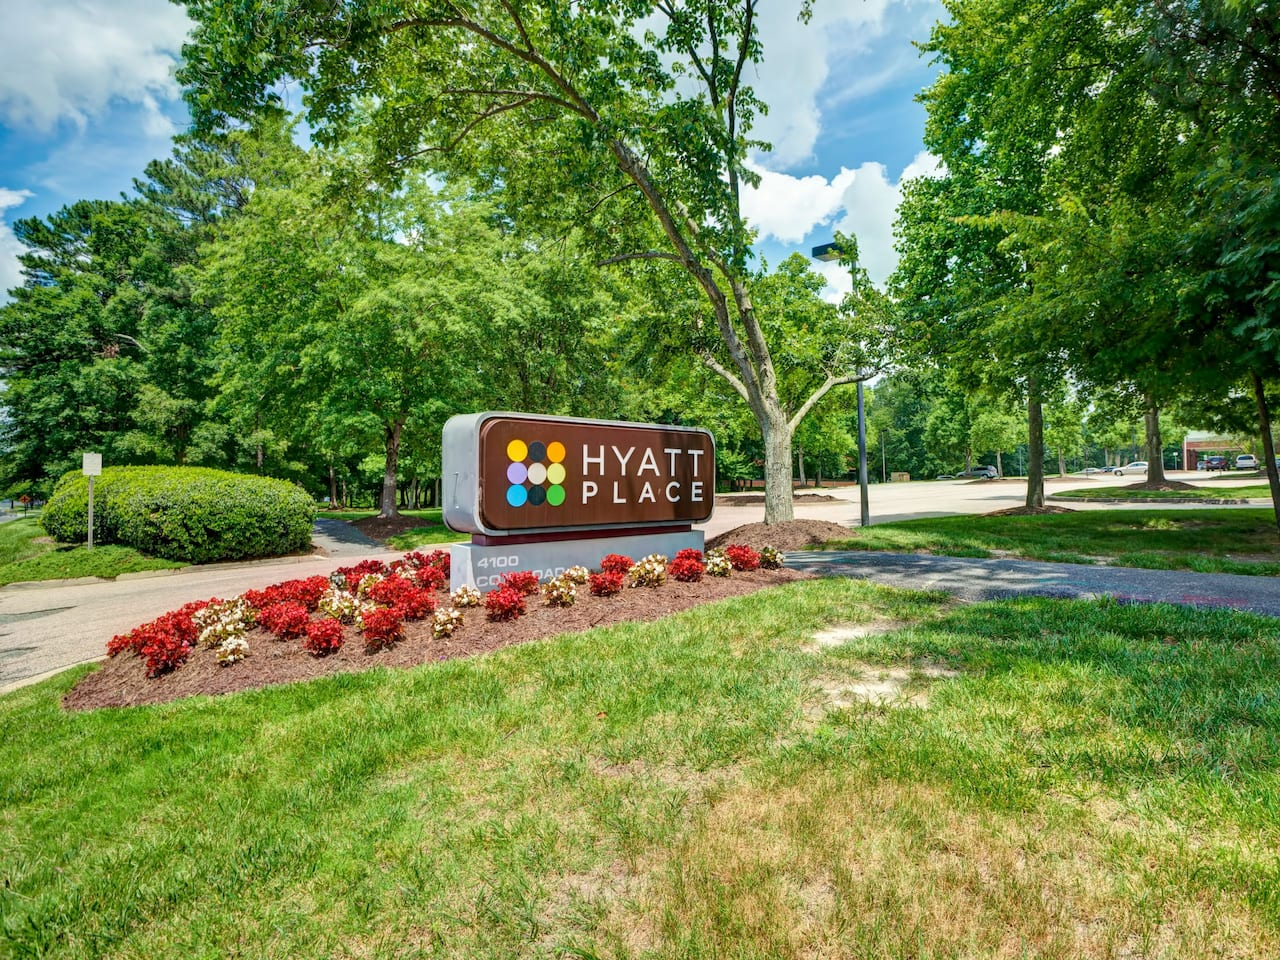 hyatt place entrance